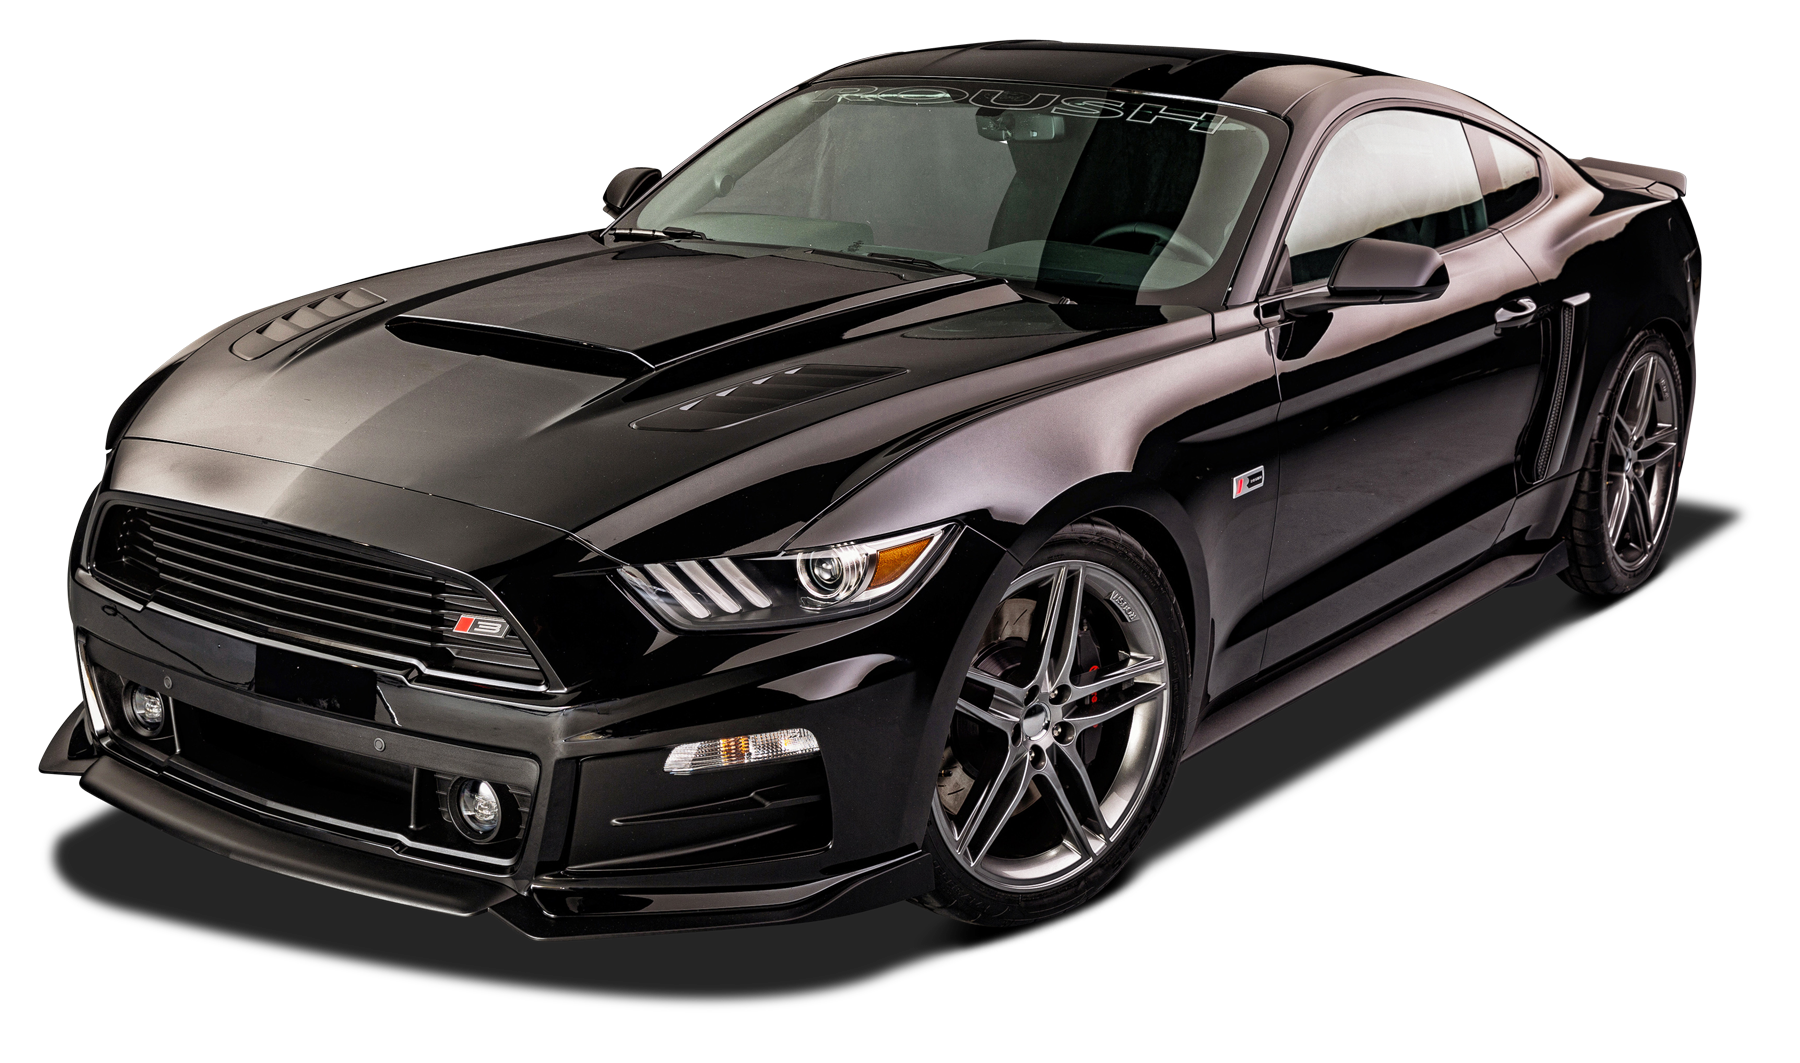 Stylish Black Ford Roush Rs Mustang Car Png Image Mustang Cars Mustang Car